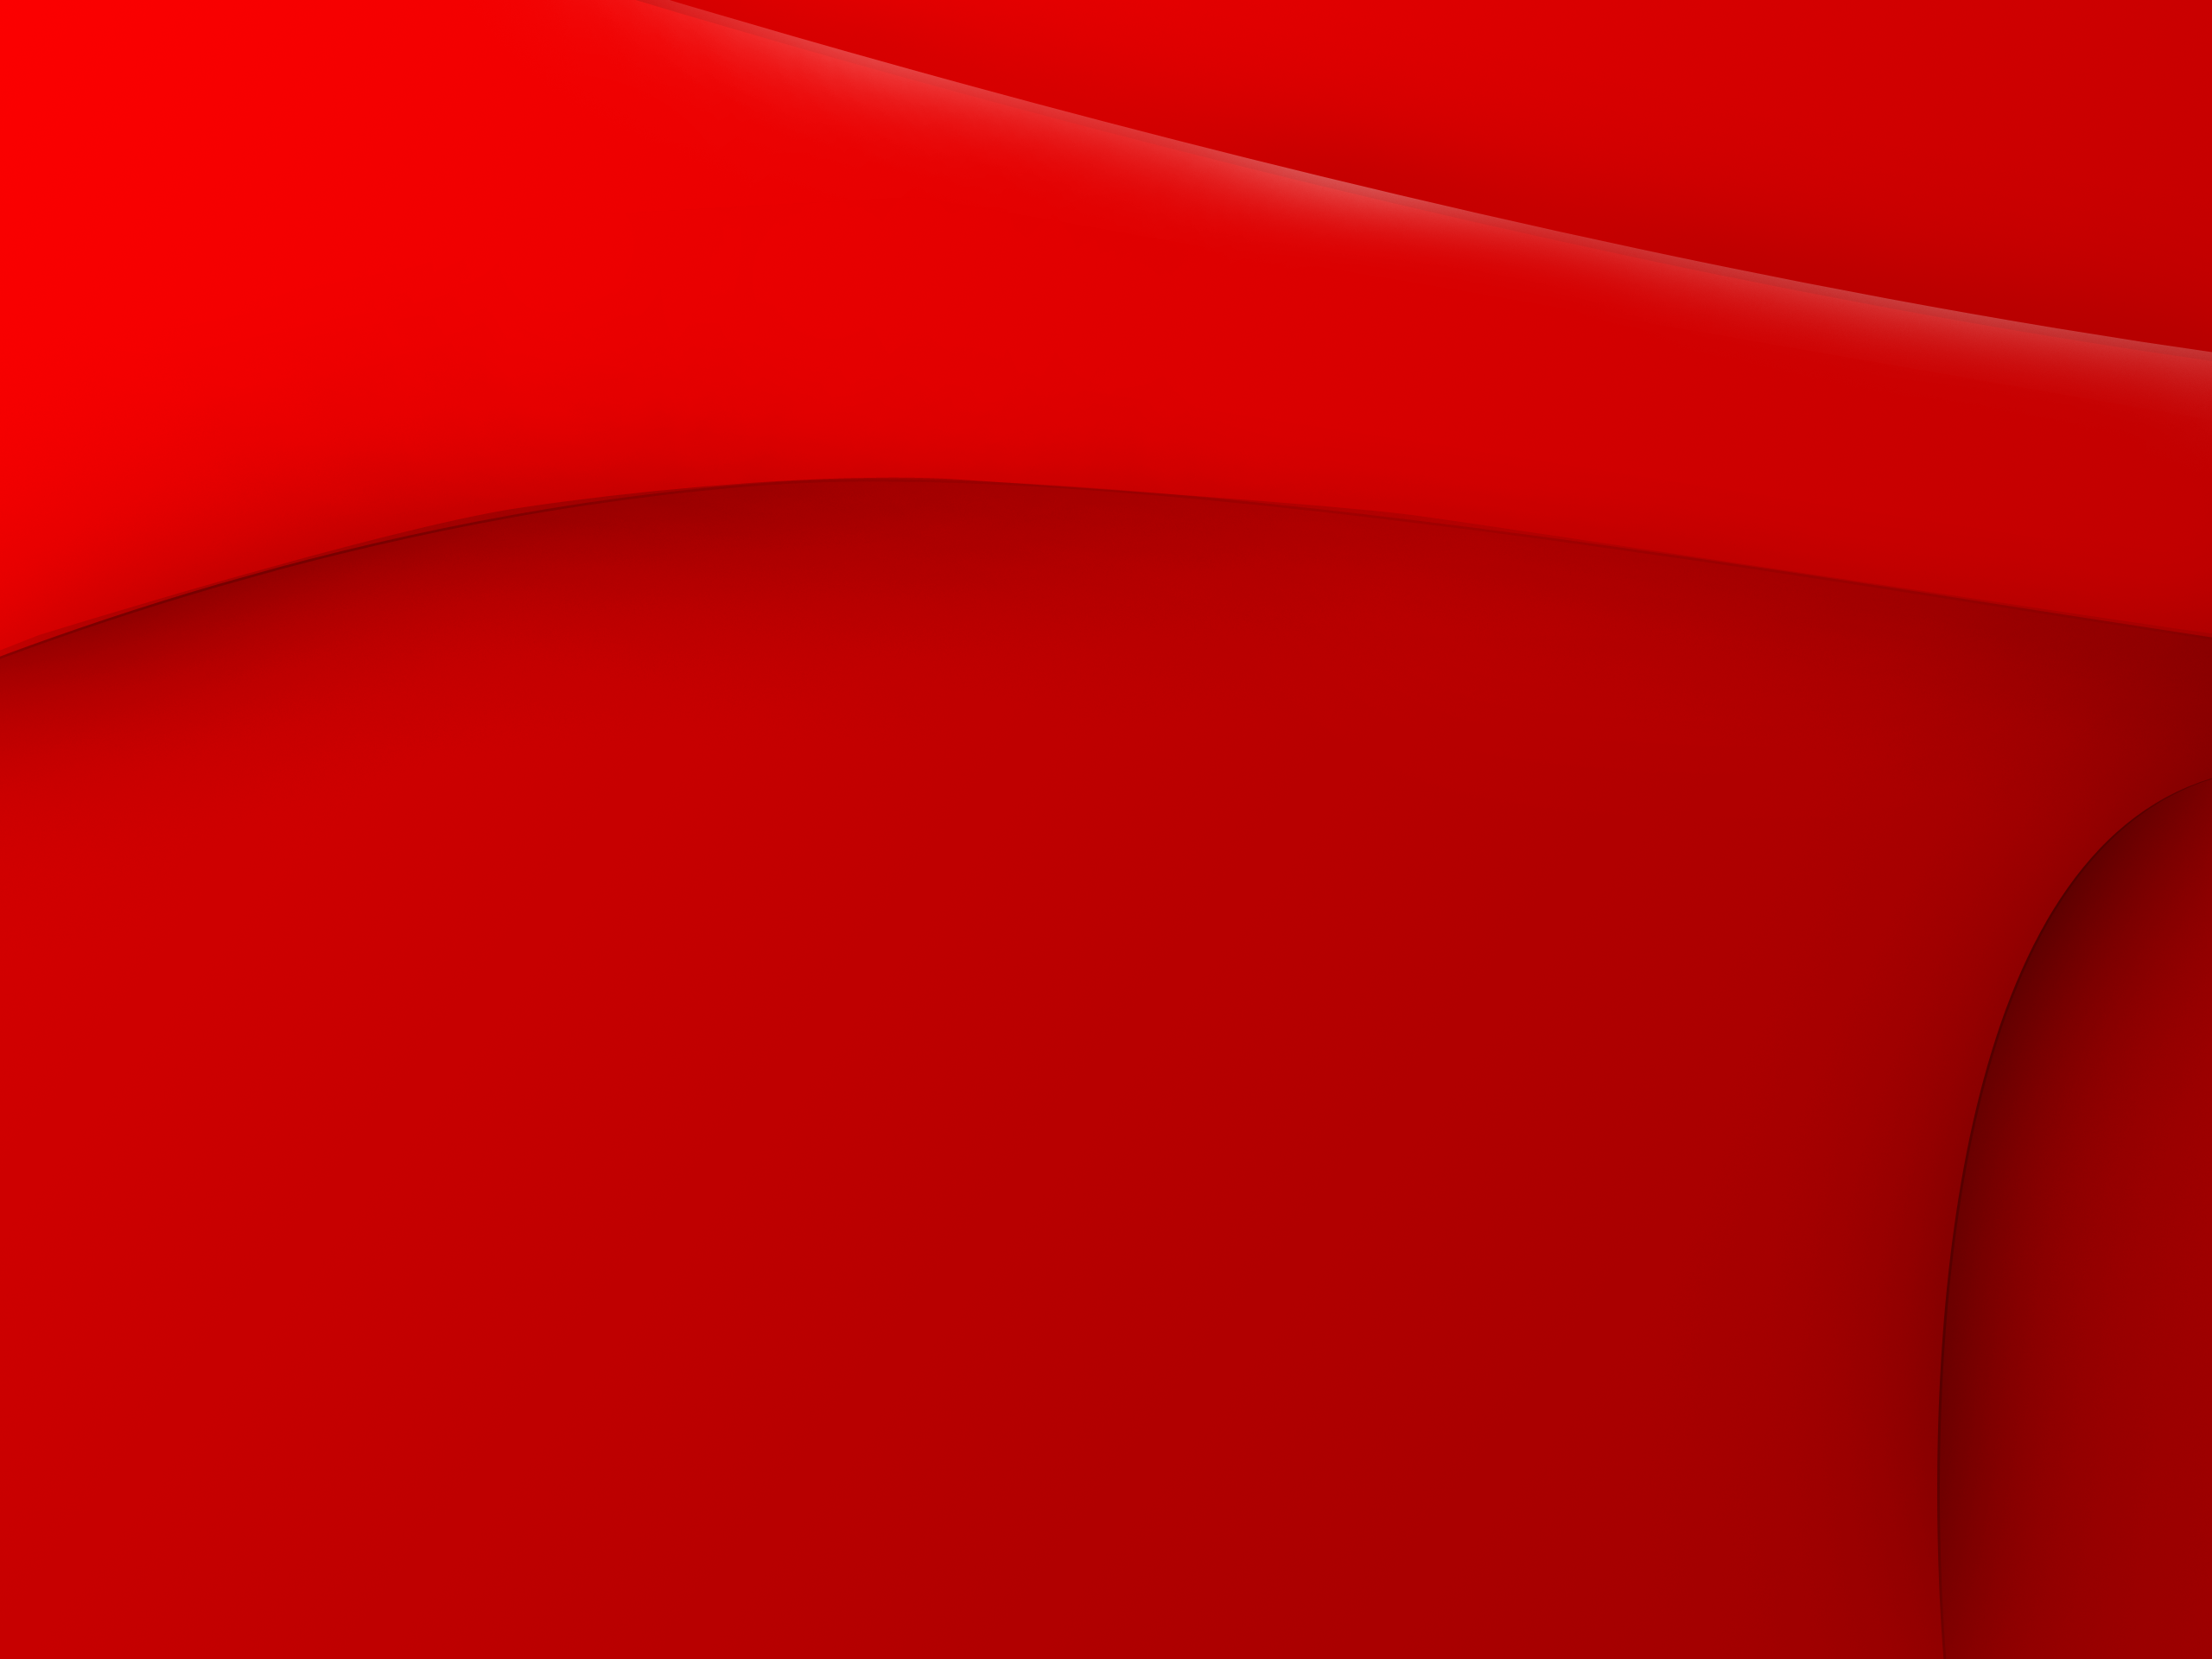 Simple Design Red Abstract Wallpaper HD Widescreen For Your PC Computer